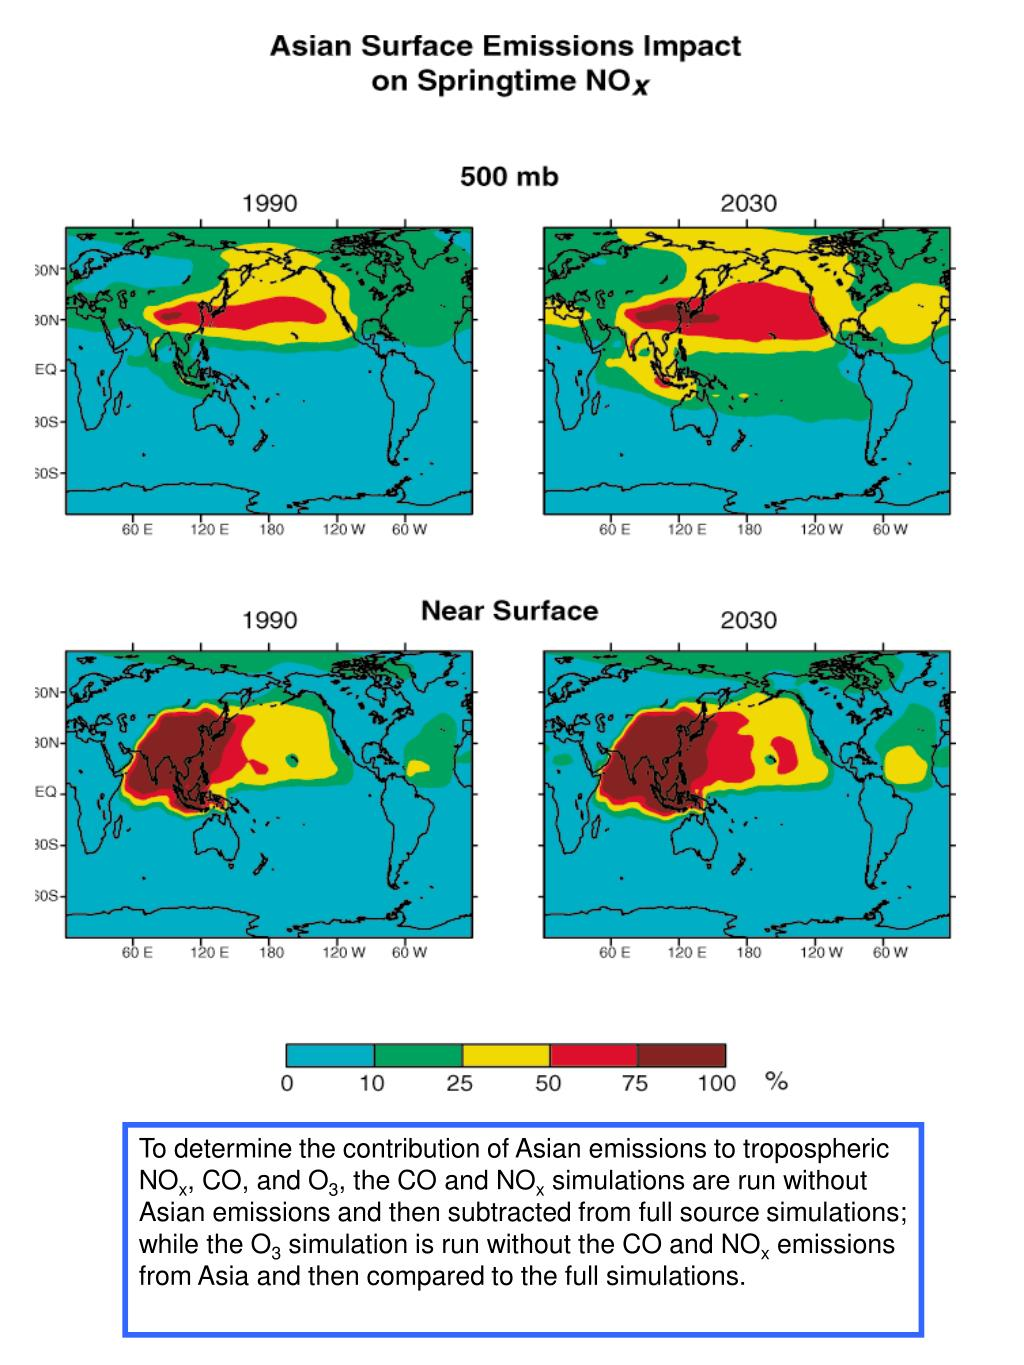 To determine the contribution of Asian emissions to tropospheric NO